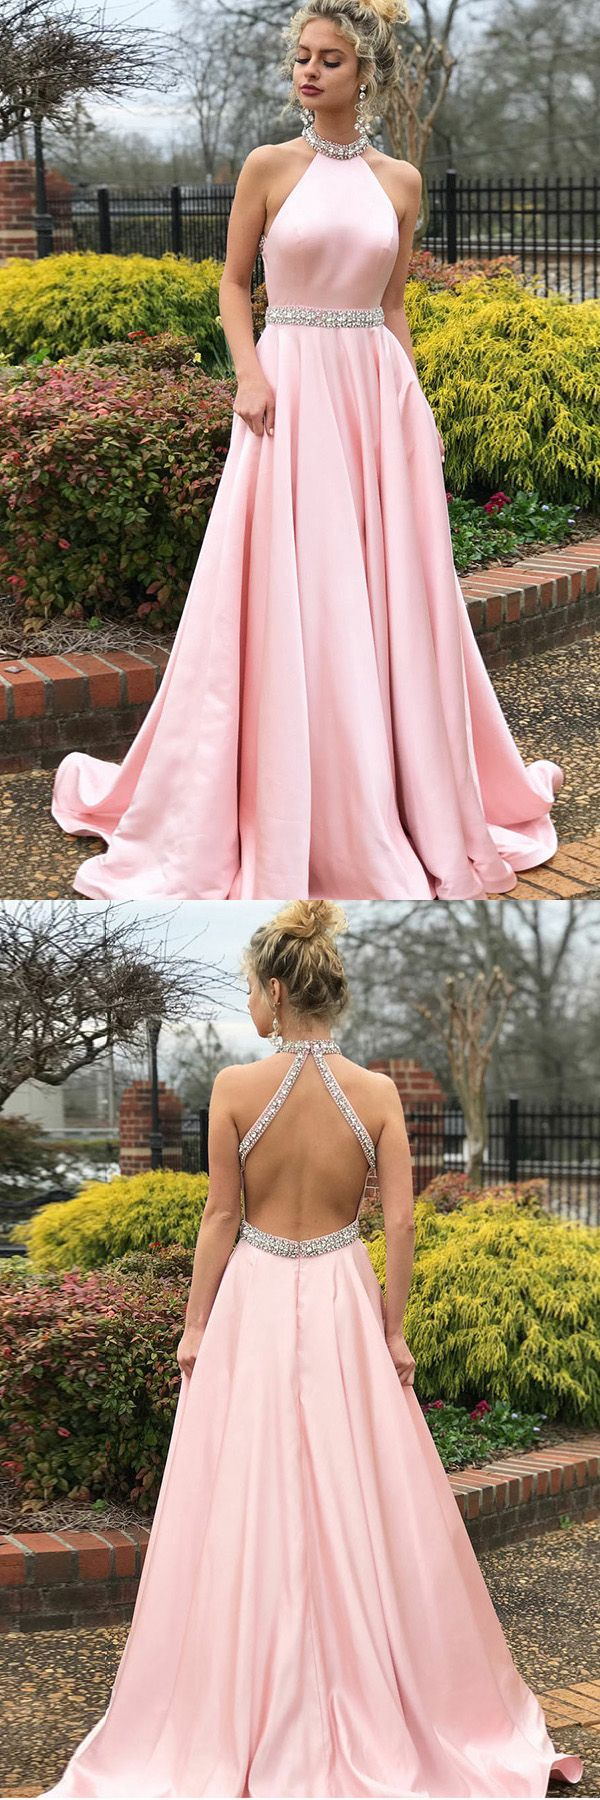 A-Line Pink Satin Open Back Sleeveless Prom Dress with Beading PG602 ...